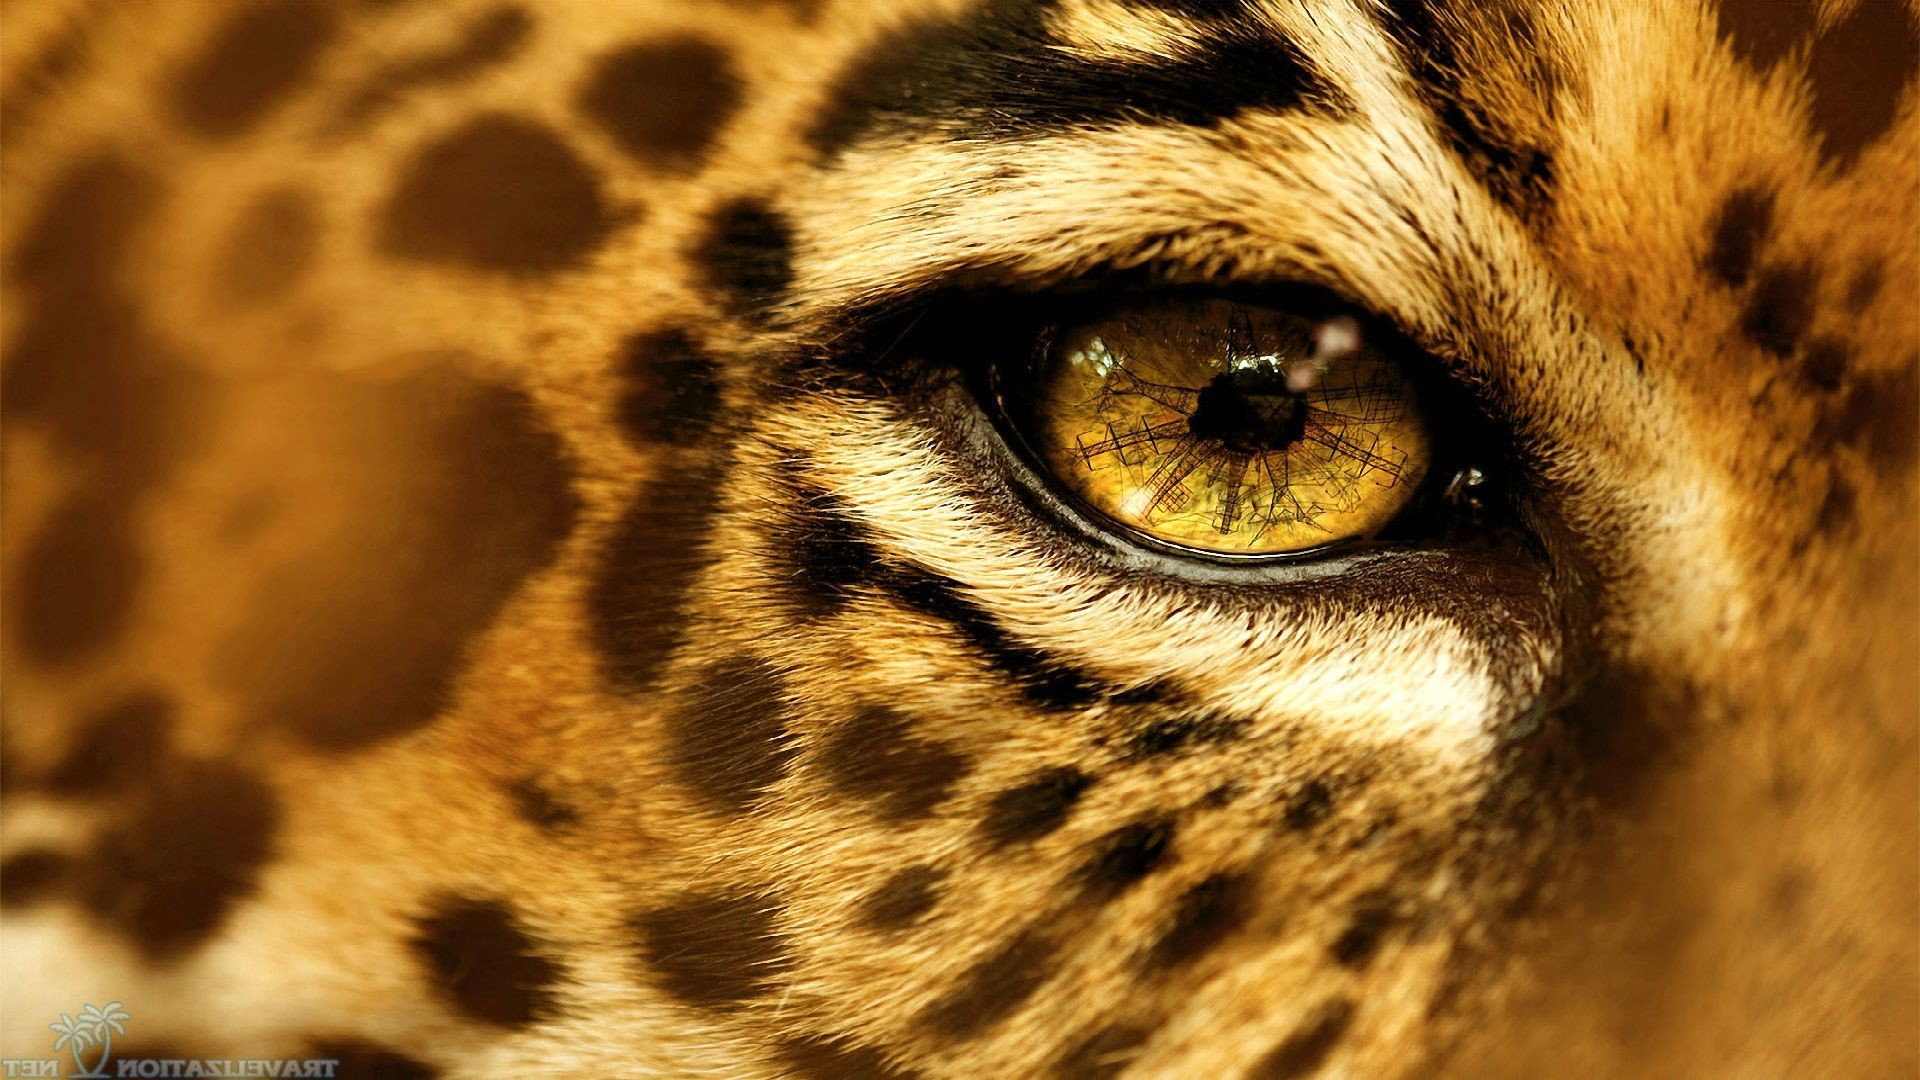 Wallpaper : animals, eyes, wildlife, big cats, whiskers, leopard ...